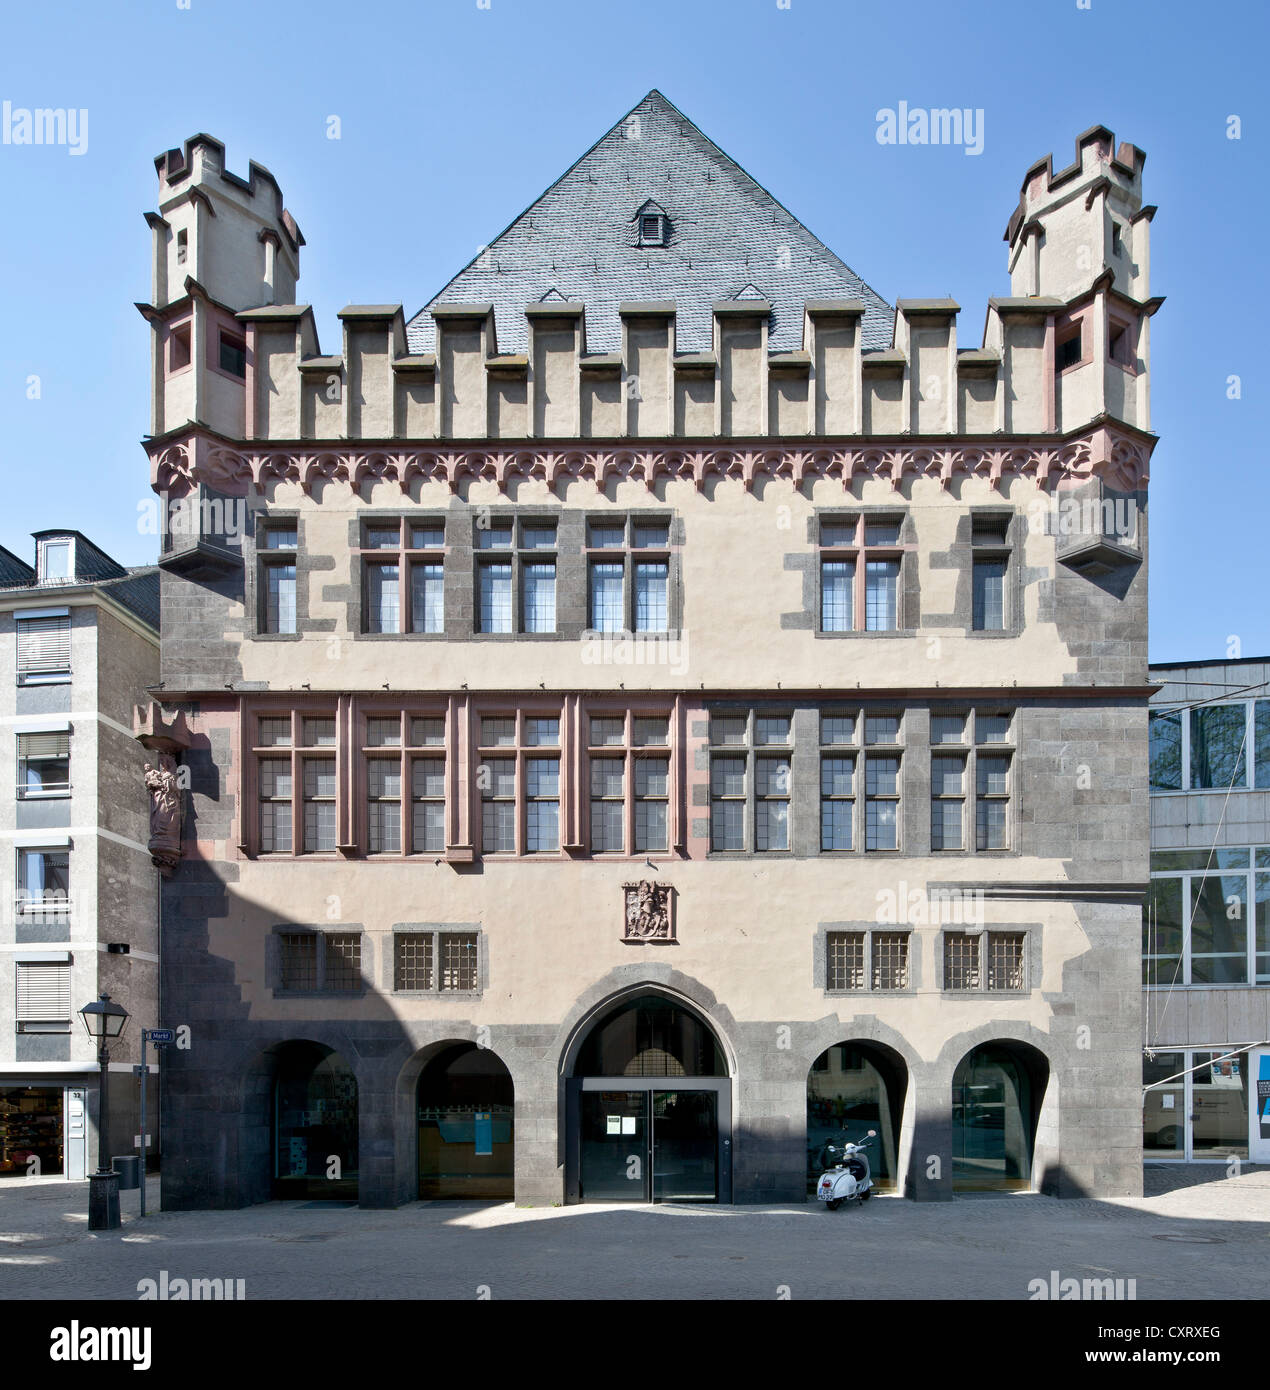 Steinernes Haus Building Also Known As Haus Bornfleck Frankfurt Am